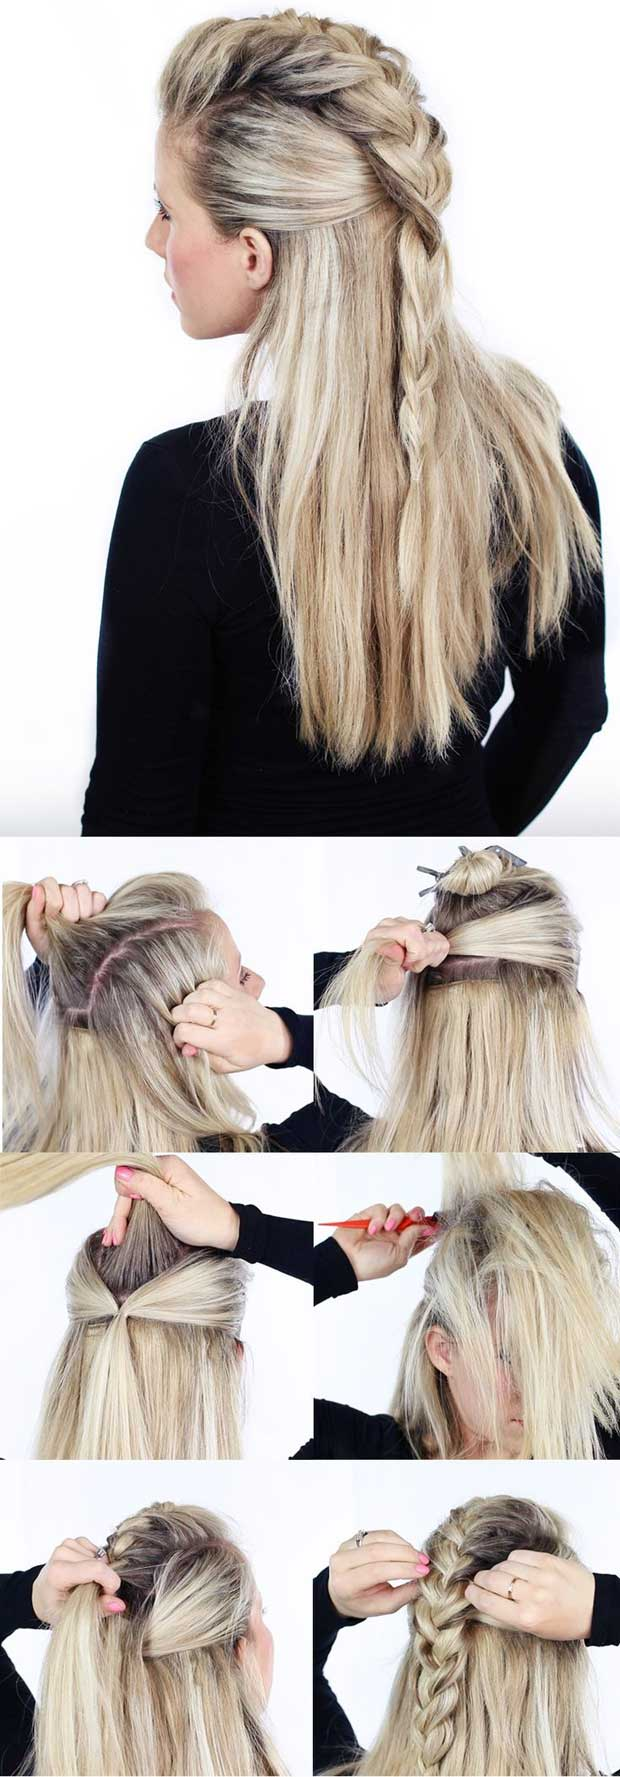 Do your own French braid